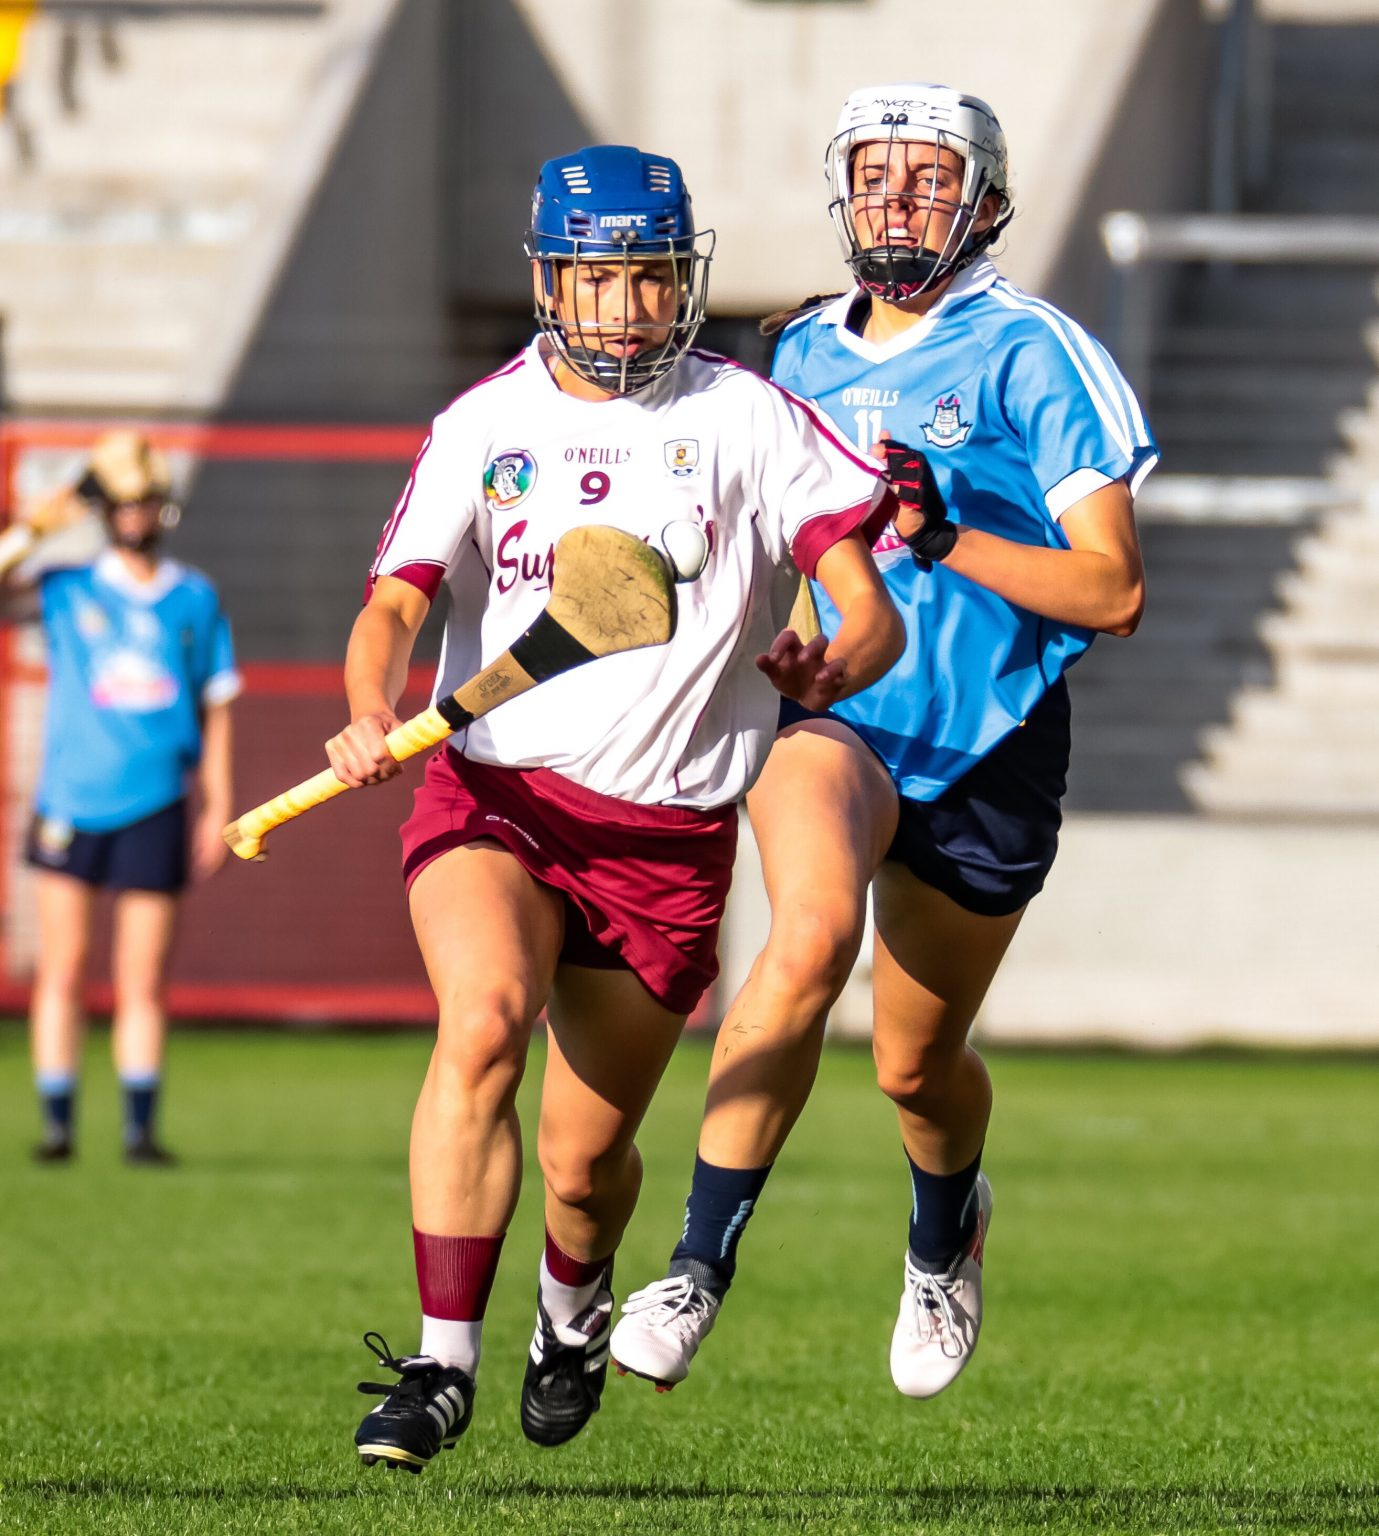 A Galway camogie player in a white jersey, maroon skort and dark blue helmet breaks away with the ball on her hurl from a dublin player in sky blue jersey, navy skort and white helmet